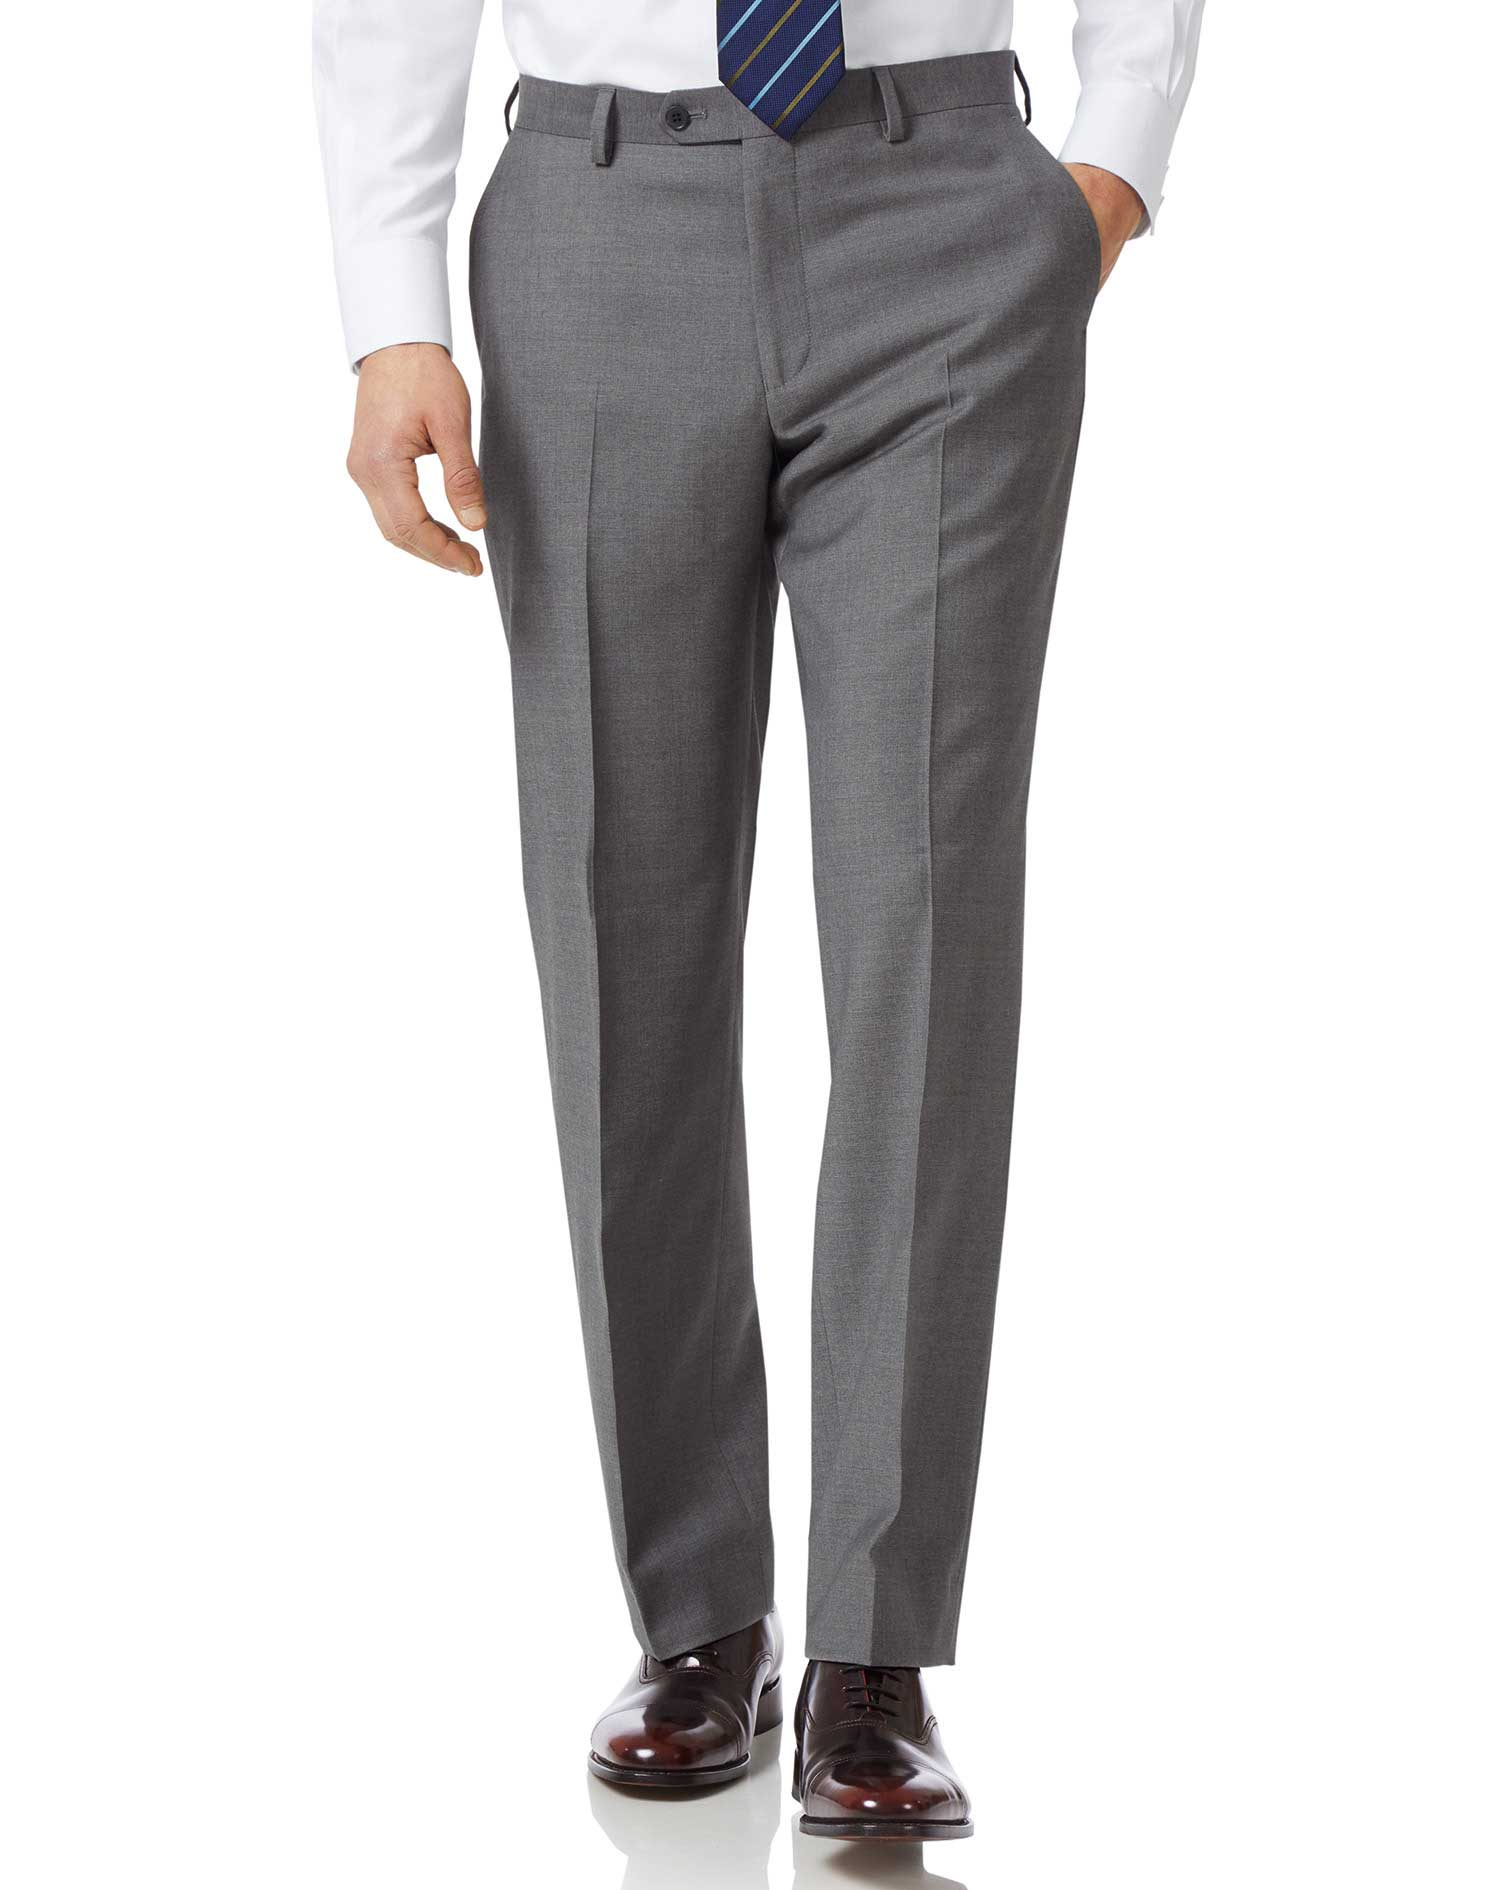 Grey Classic Fit Twill Business Suit Trousers Size W34 L30 by Charles Tyrwhitt